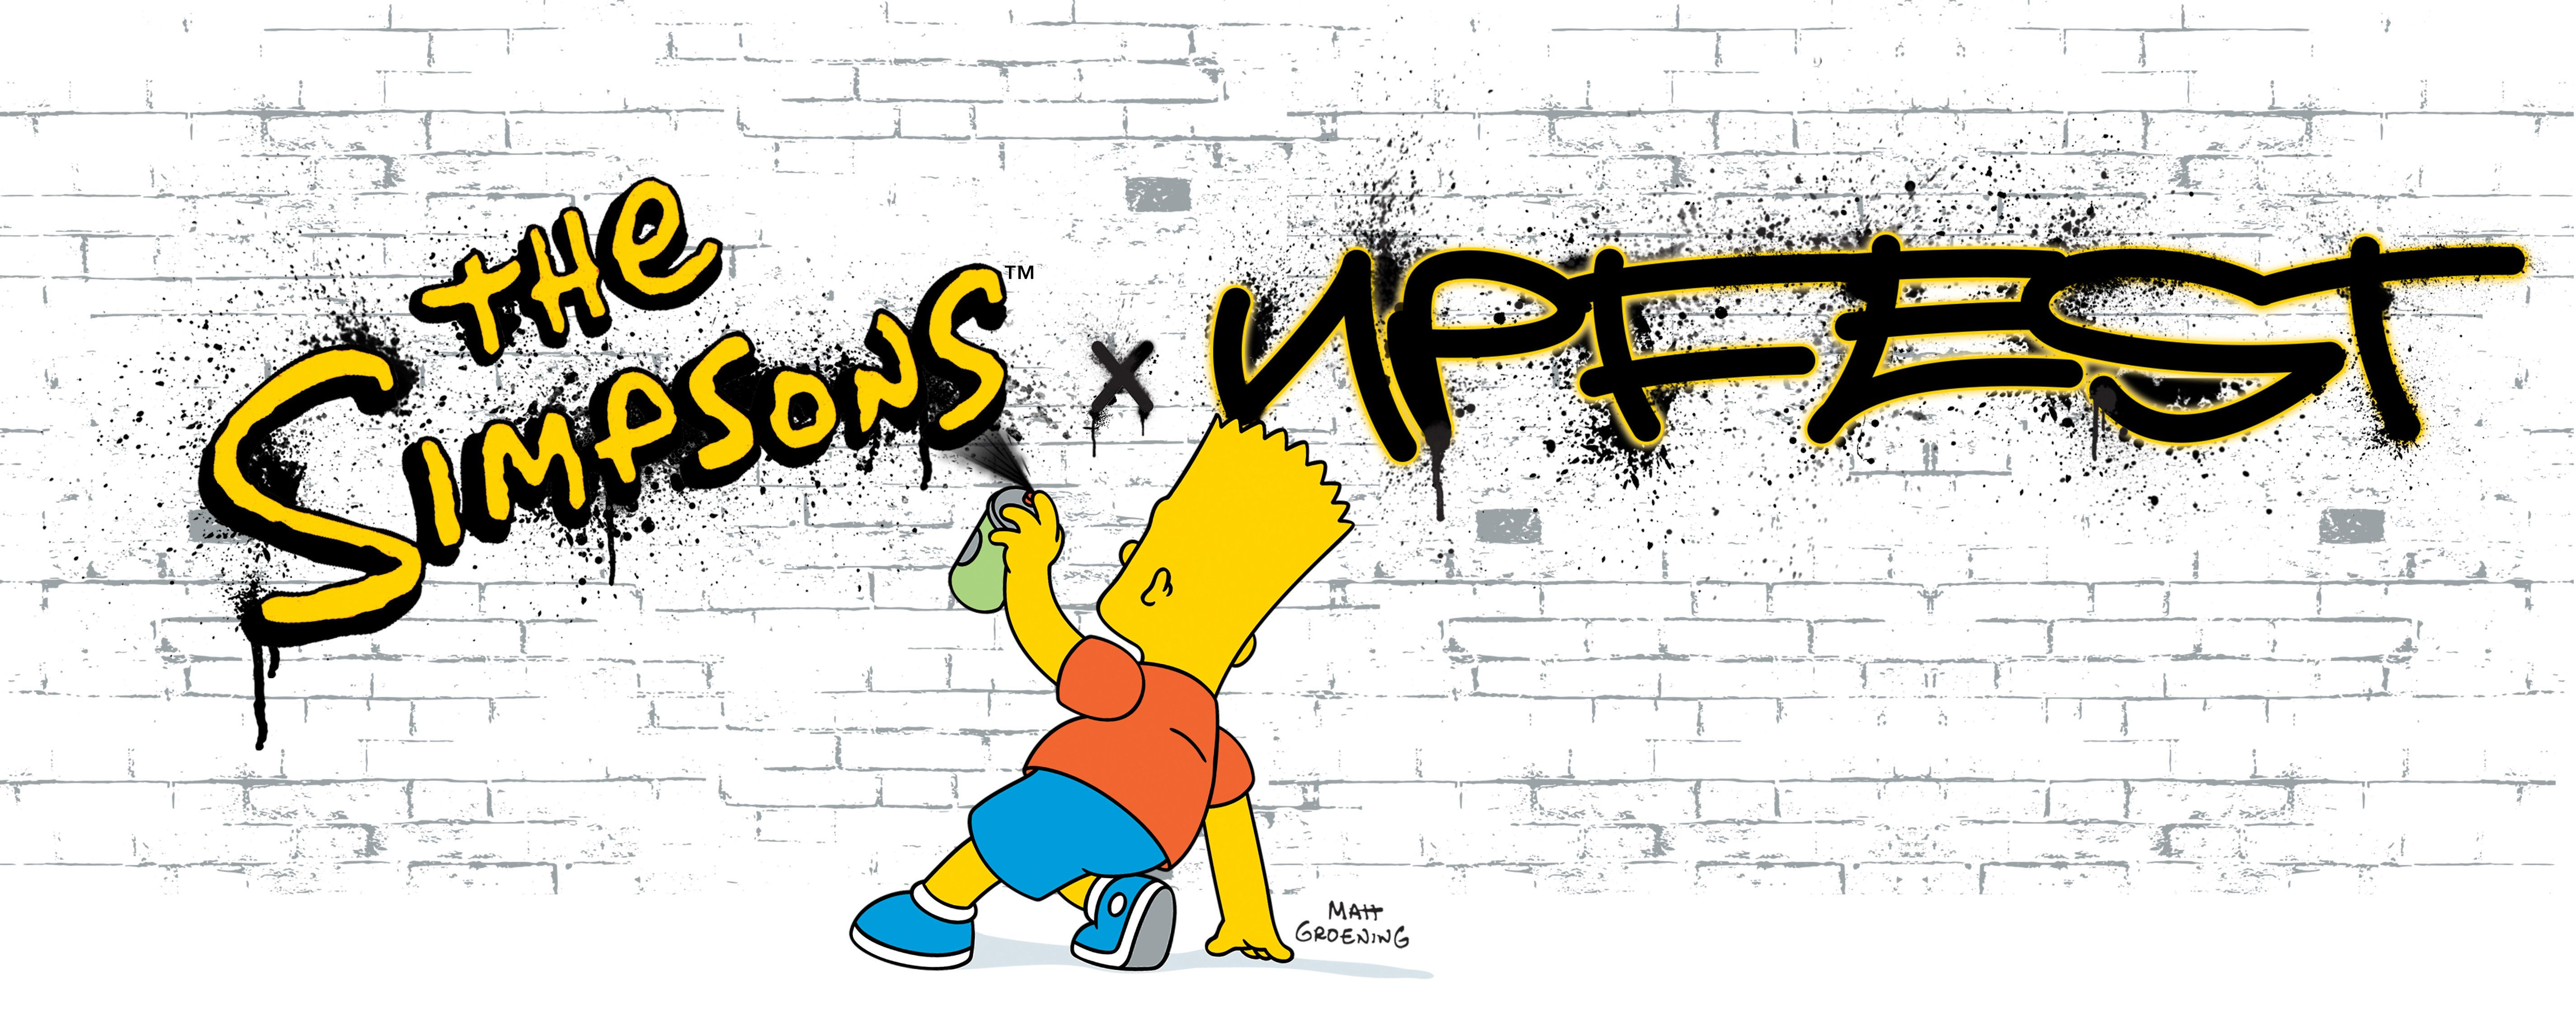 'The Simpsons' Are Getting A Street Art Makeover At Bristol's Upfest 2018